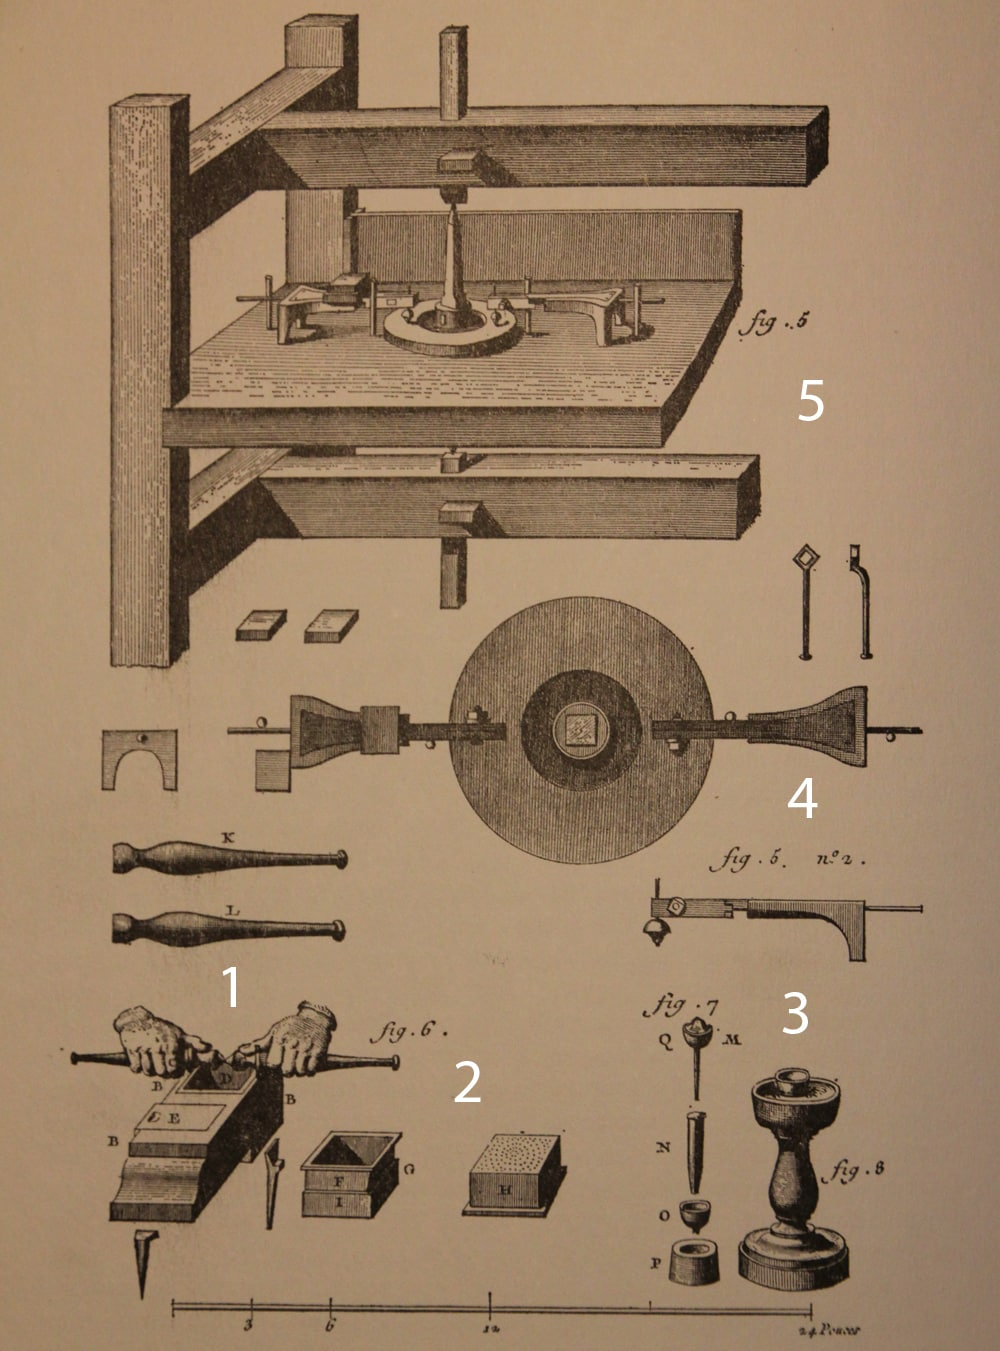 File-Polishing Machine 1770.jpg